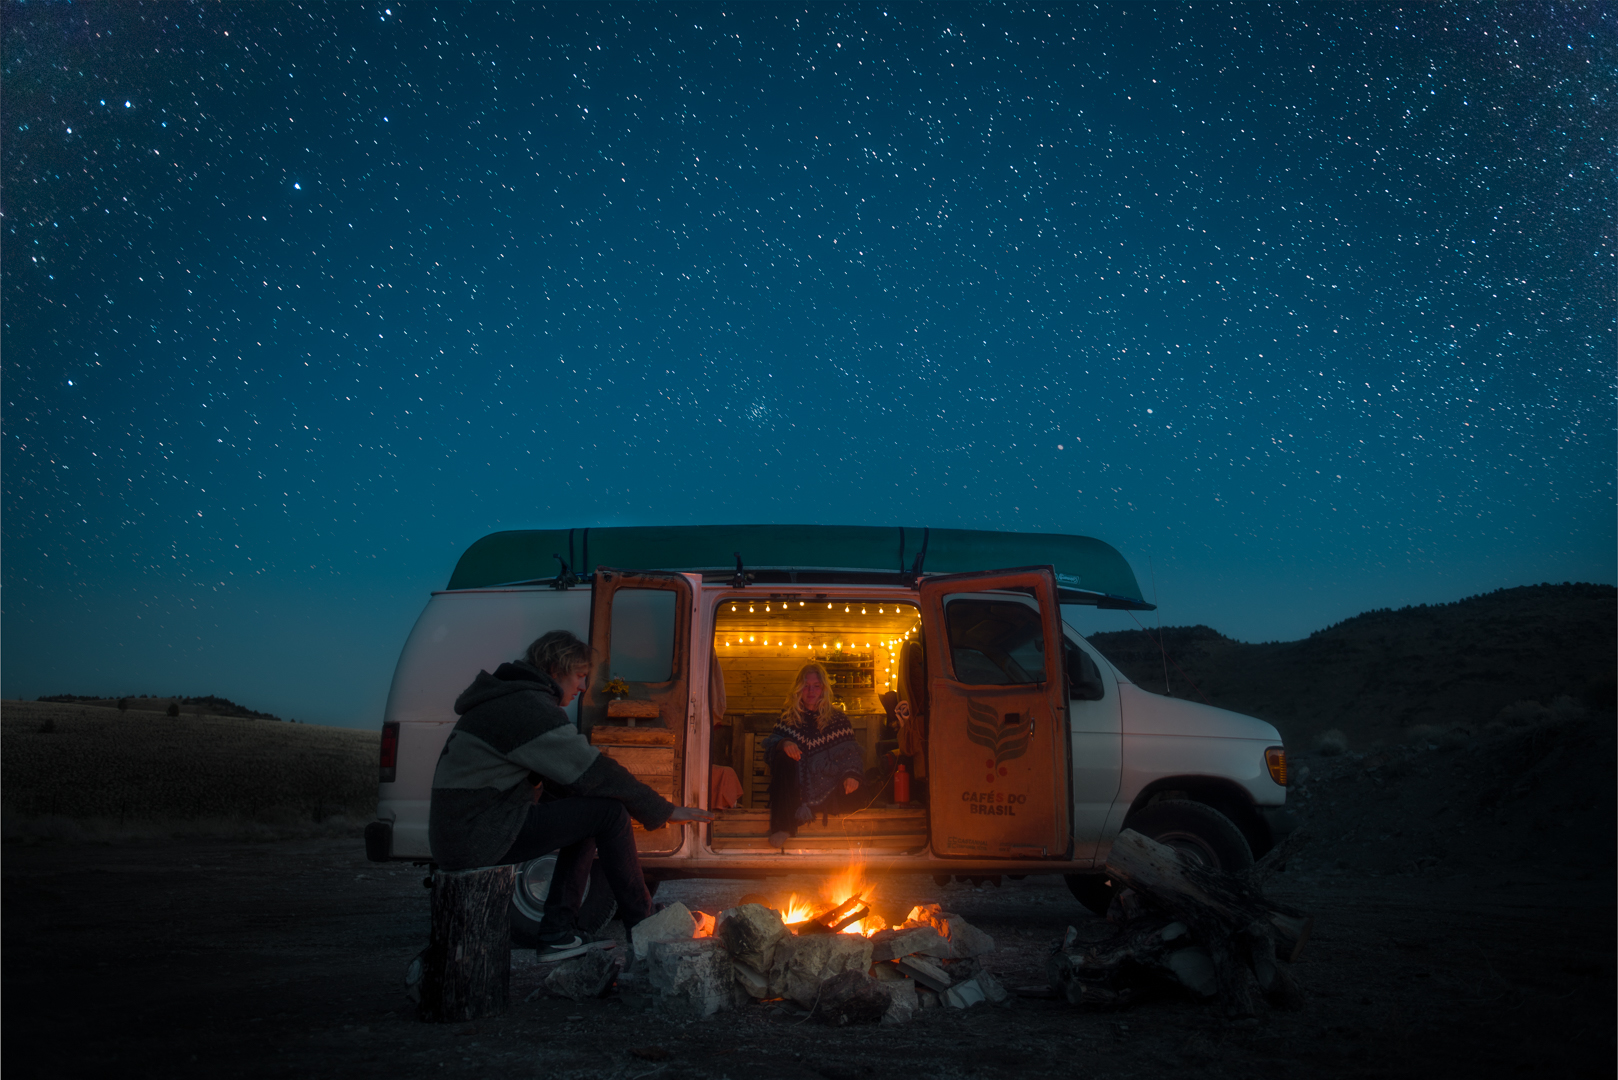 The couple take their van around North America and document it in stunning photograph.